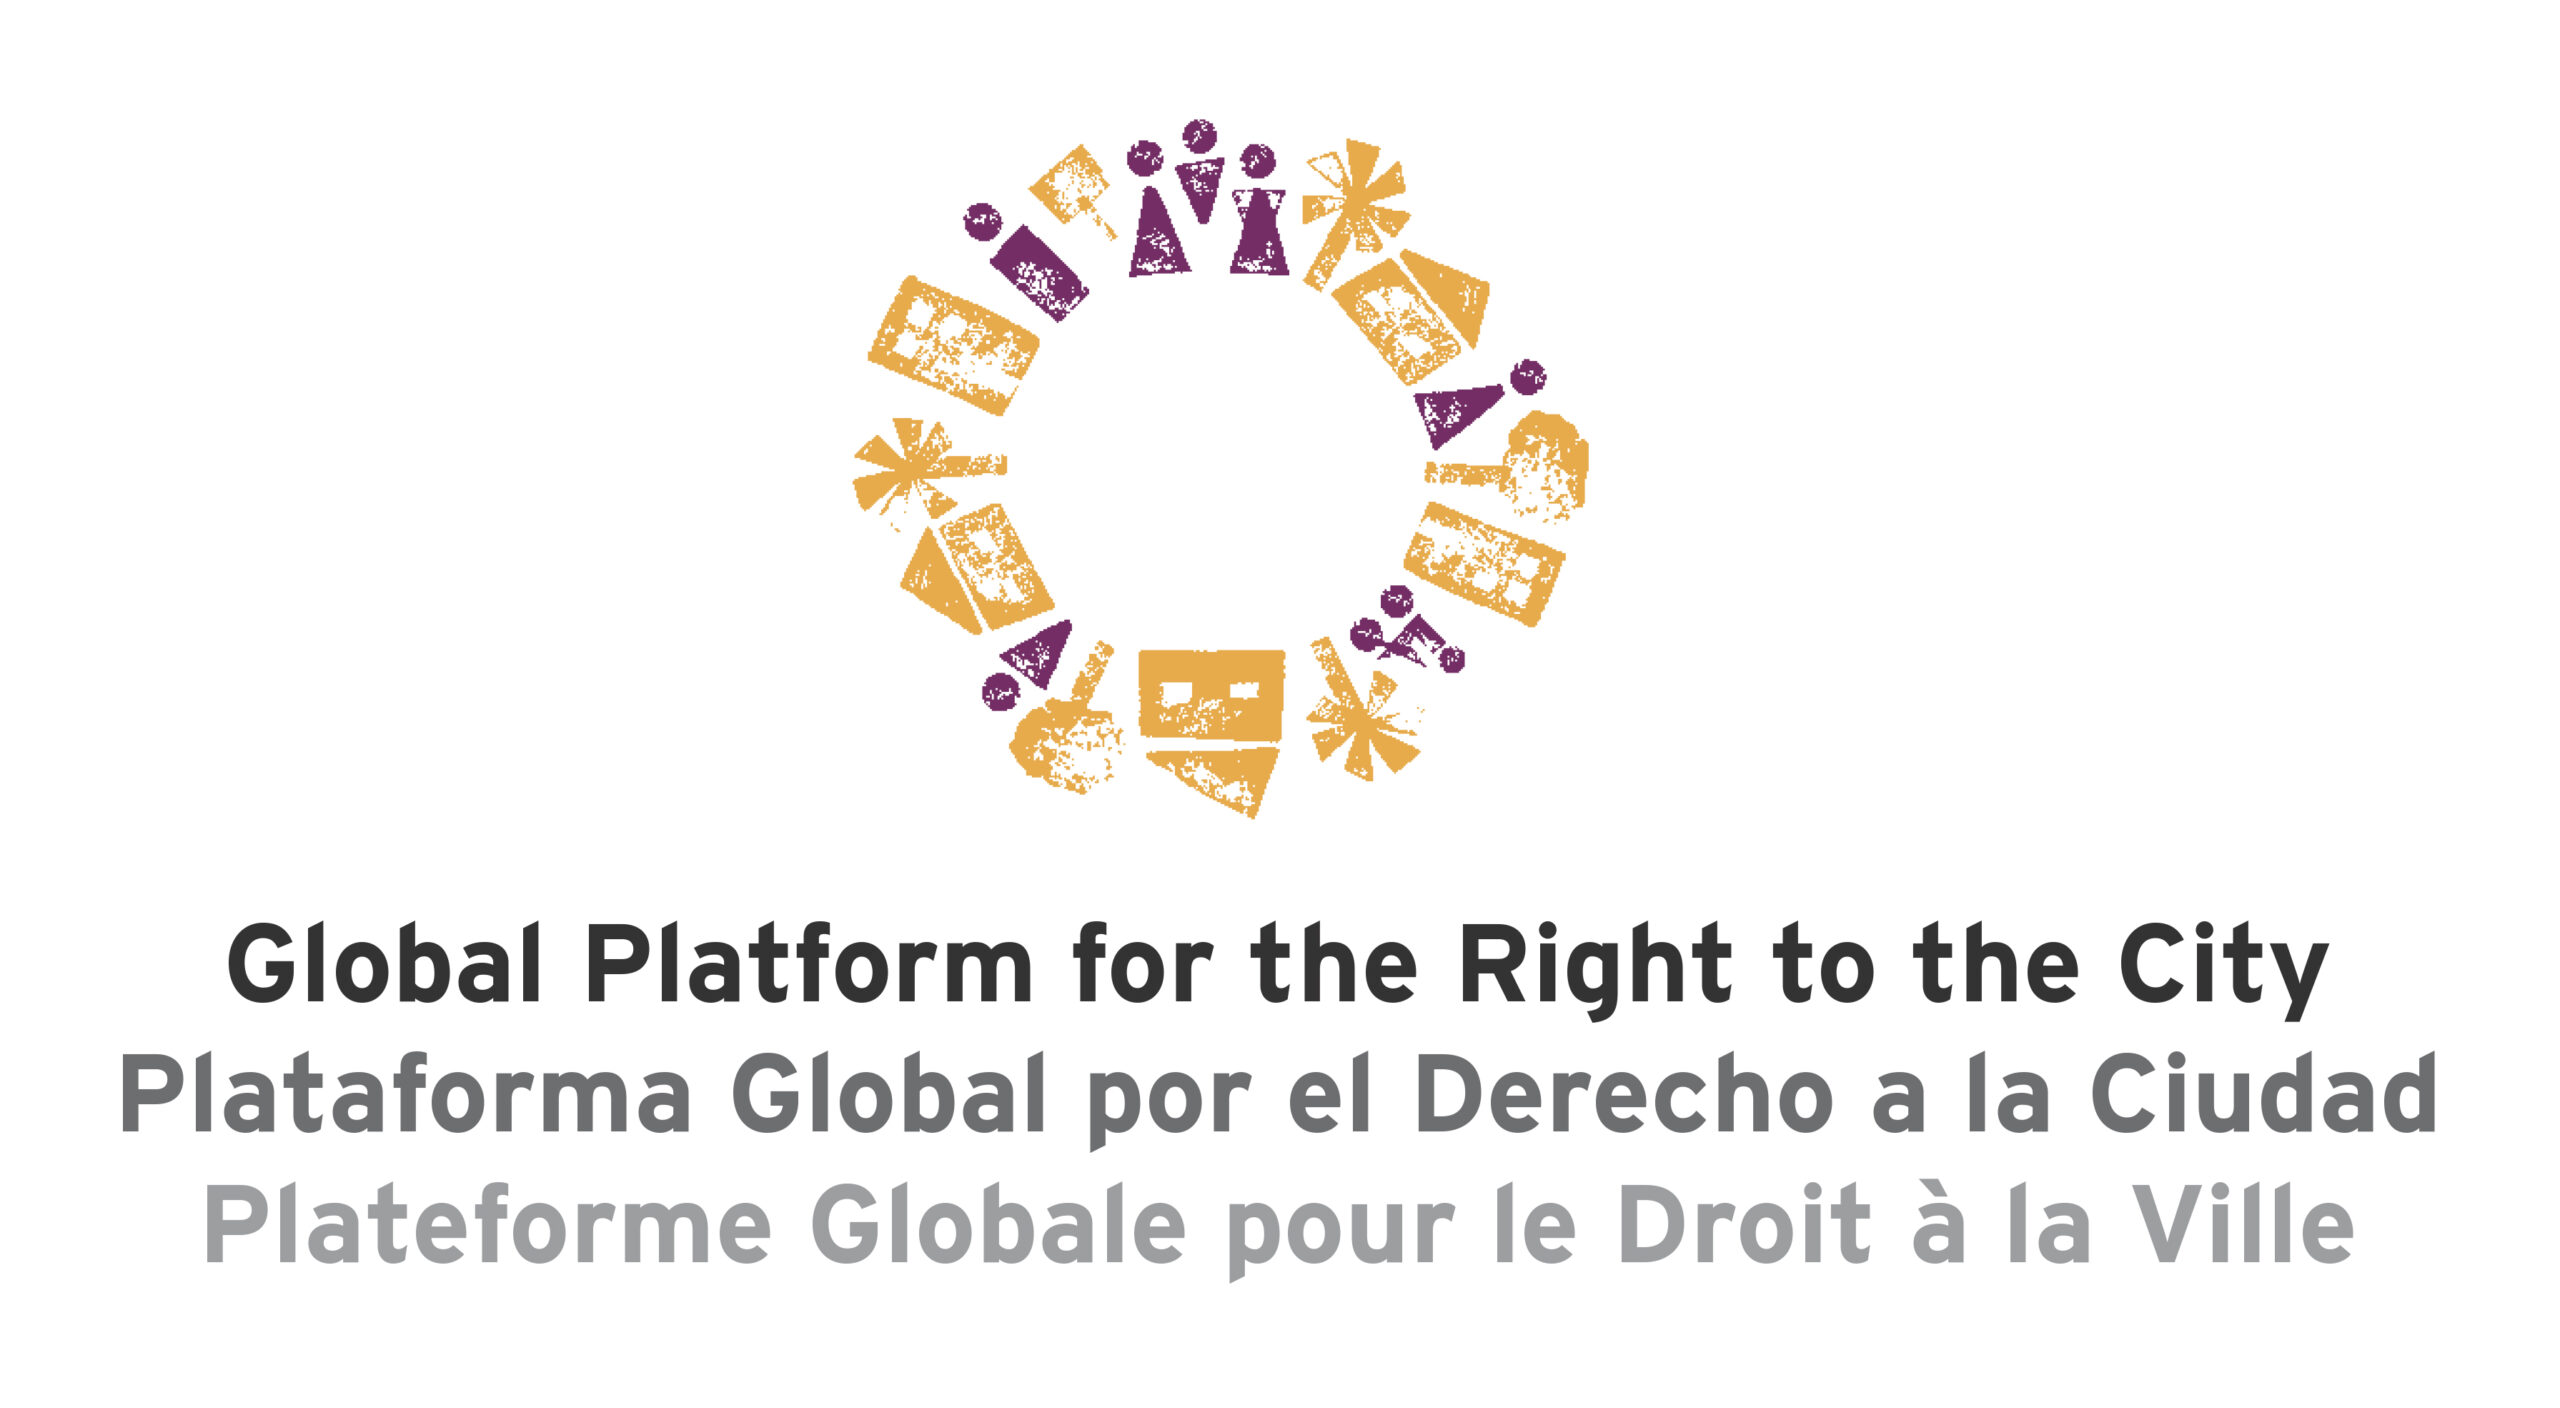 GPR2C - Global Platform for the Right to the City